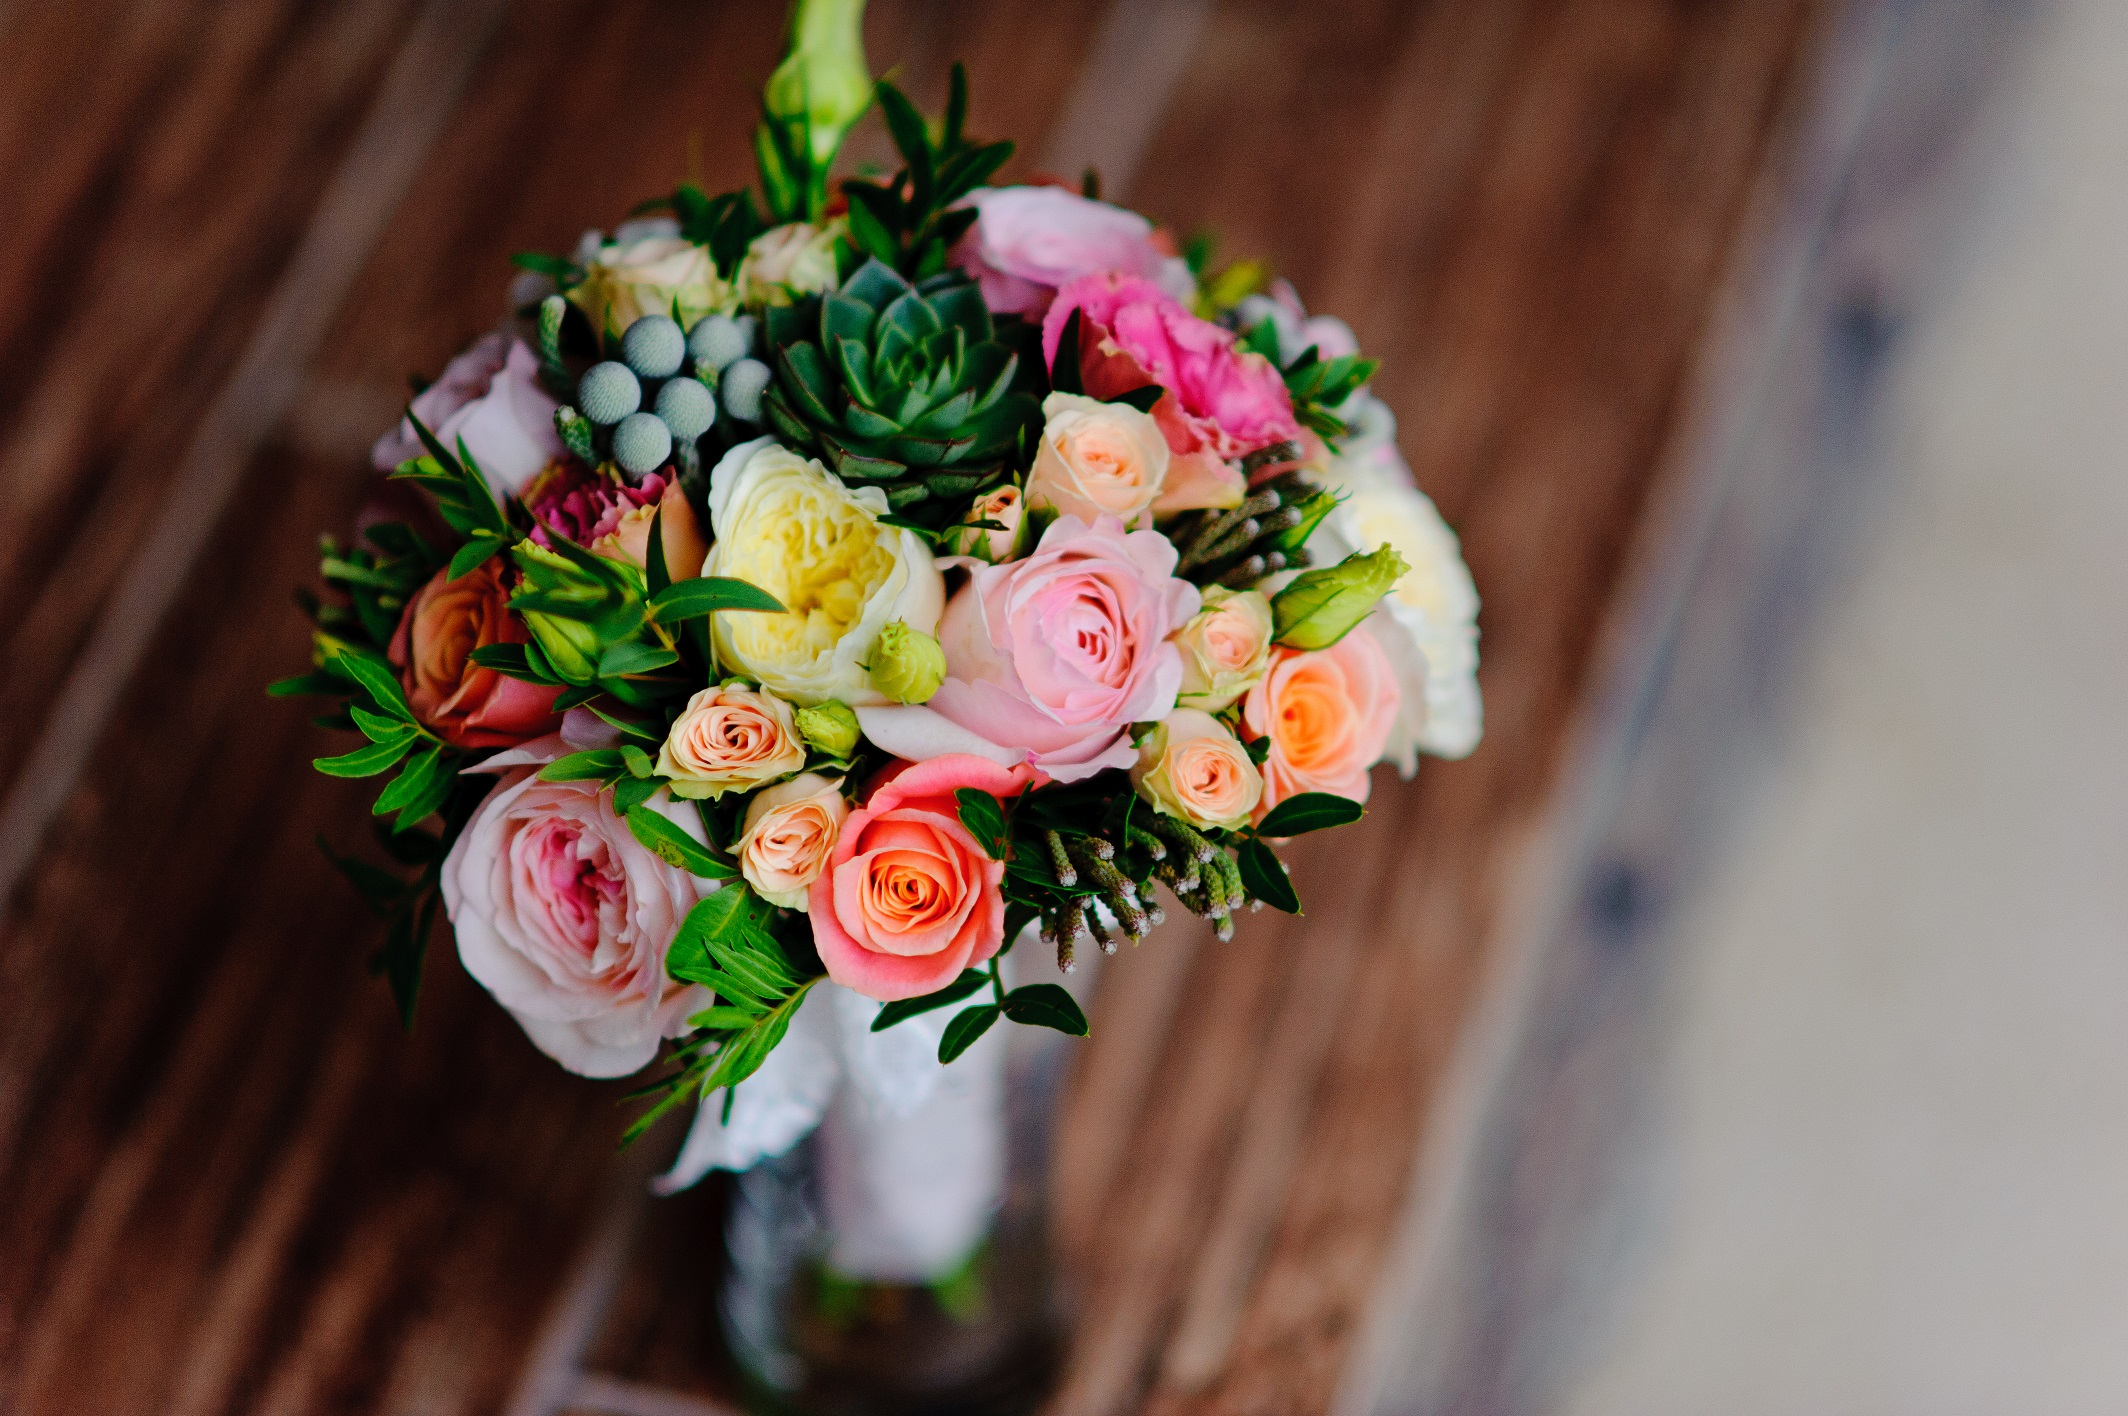 bouquet of fresh flowers, white and pink roses